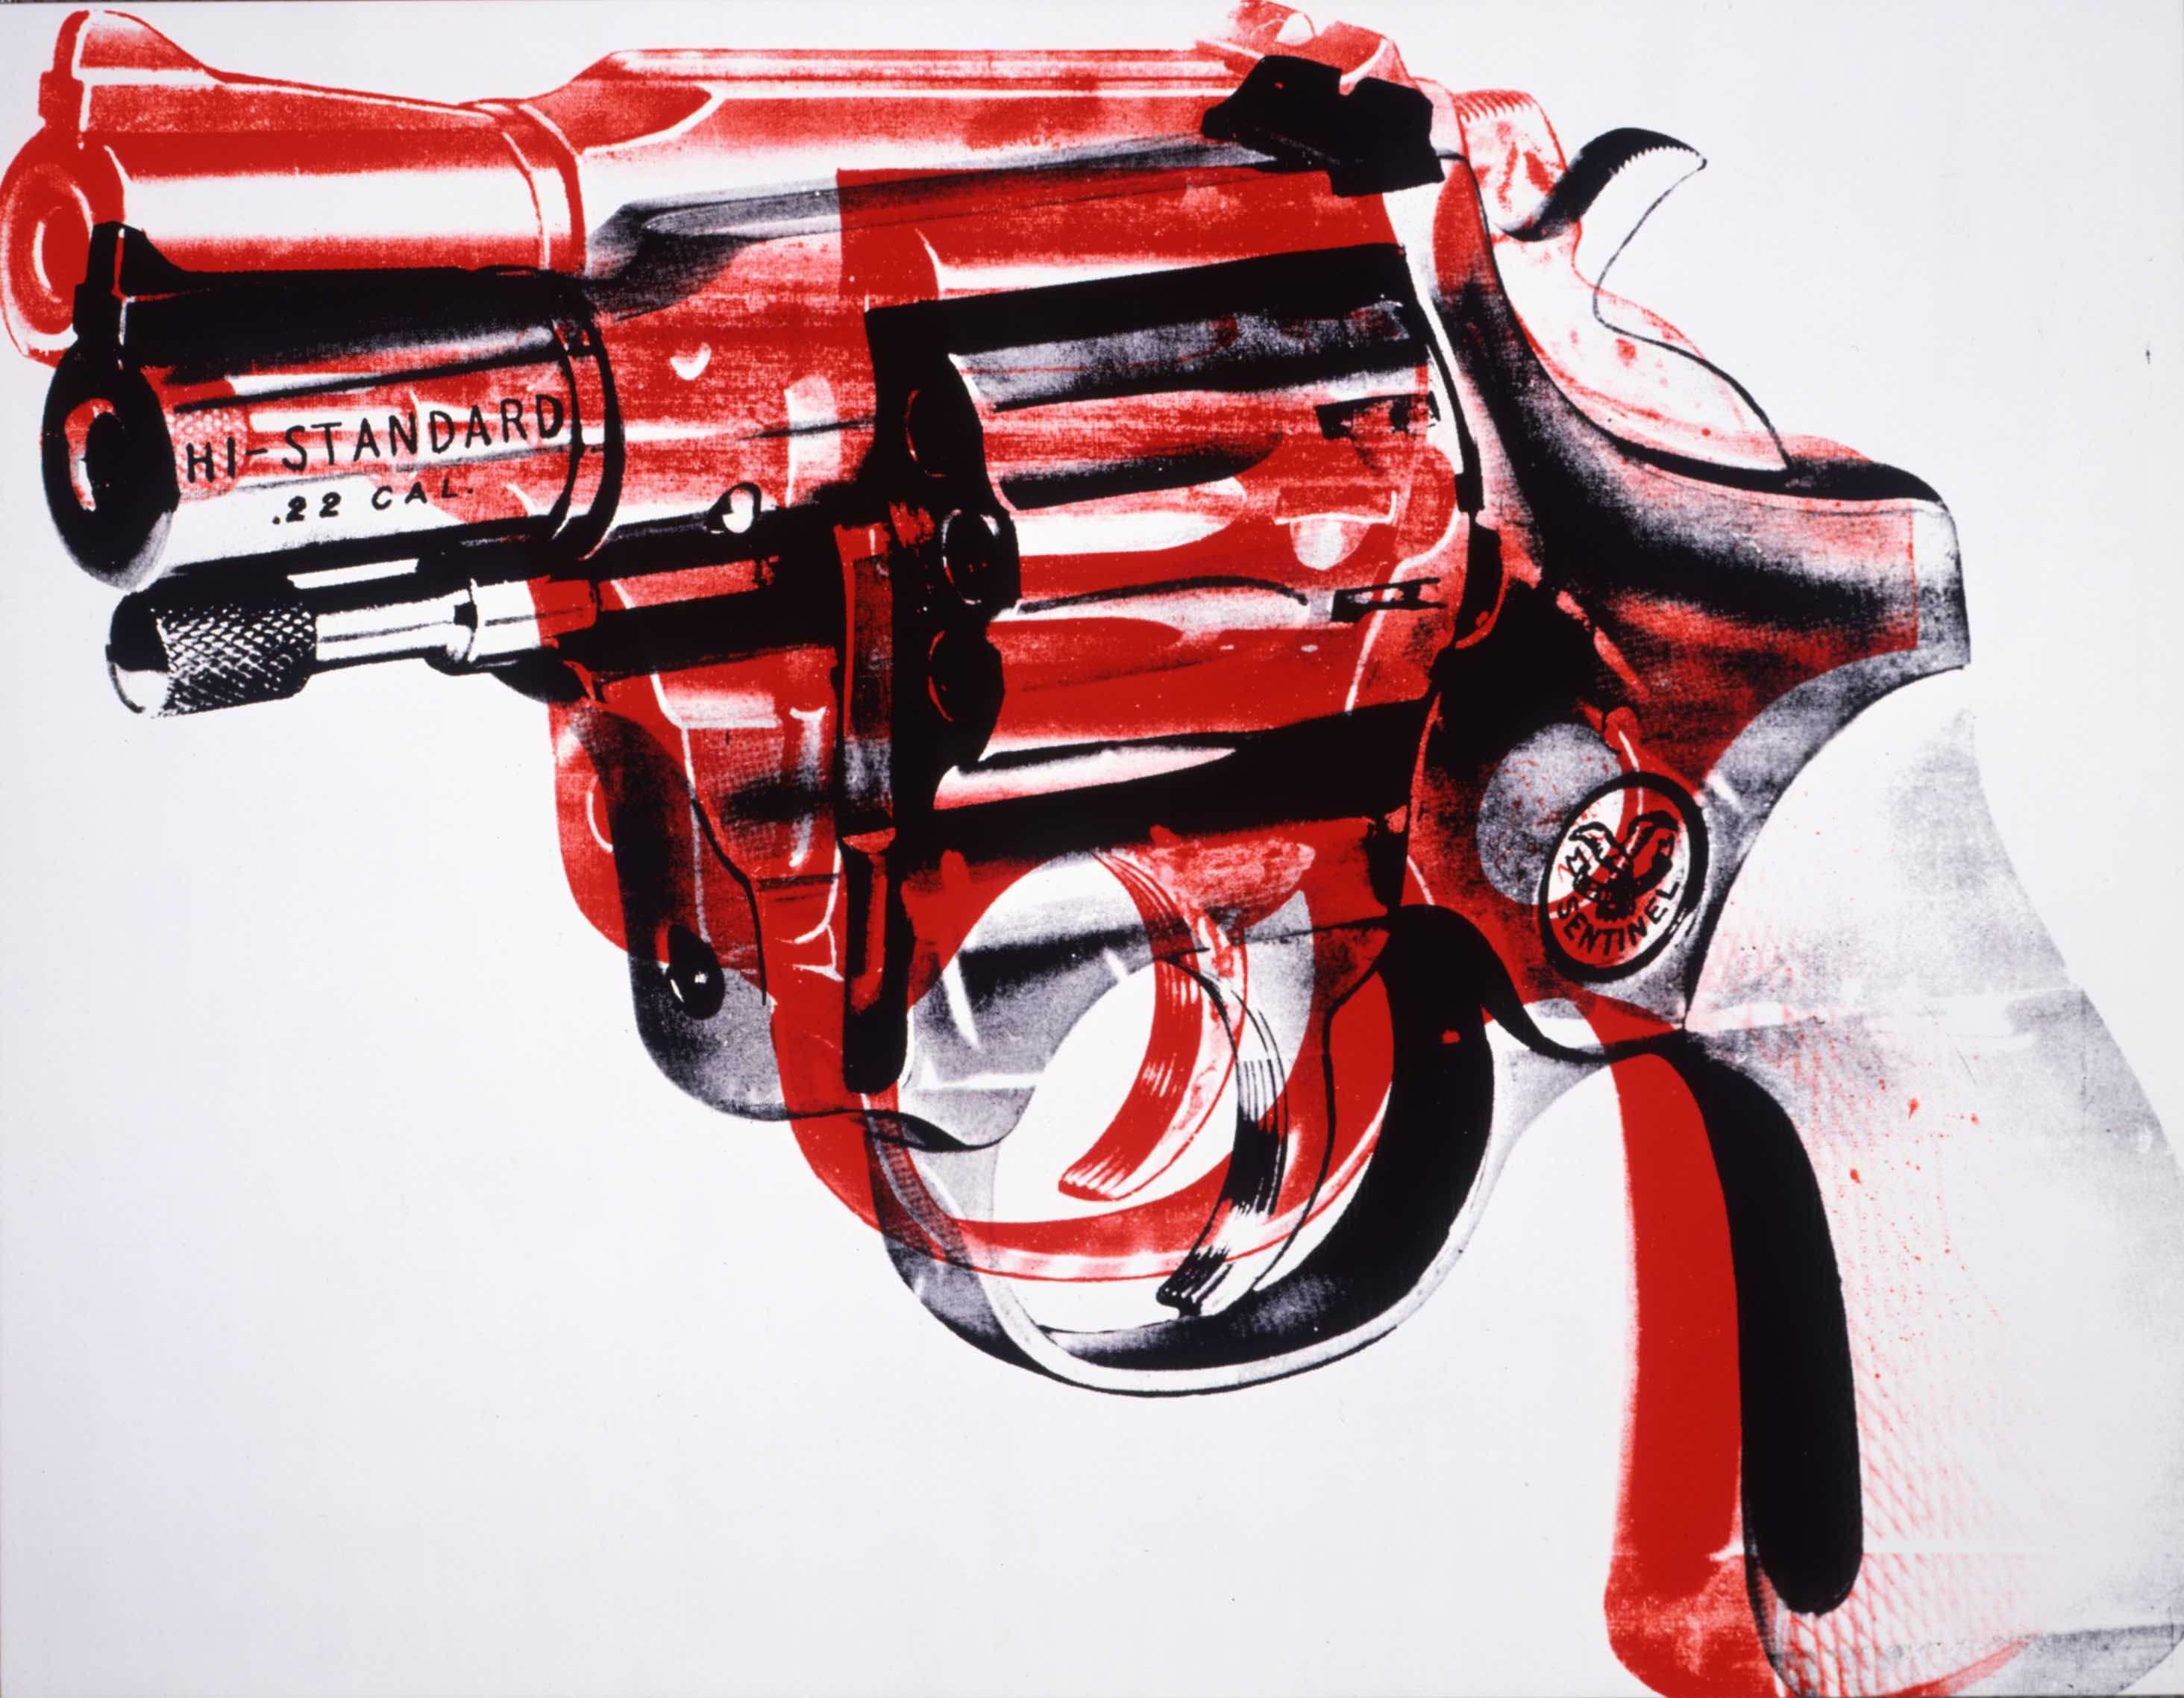 Revolver. 1981. Acrylic and silkscreen ink on linen. Collection of the Andy Warhol Museum, Pittsburgh © 2017 The Andy Warhol Foundation for the Visual Arts, Inc. / VEGAP